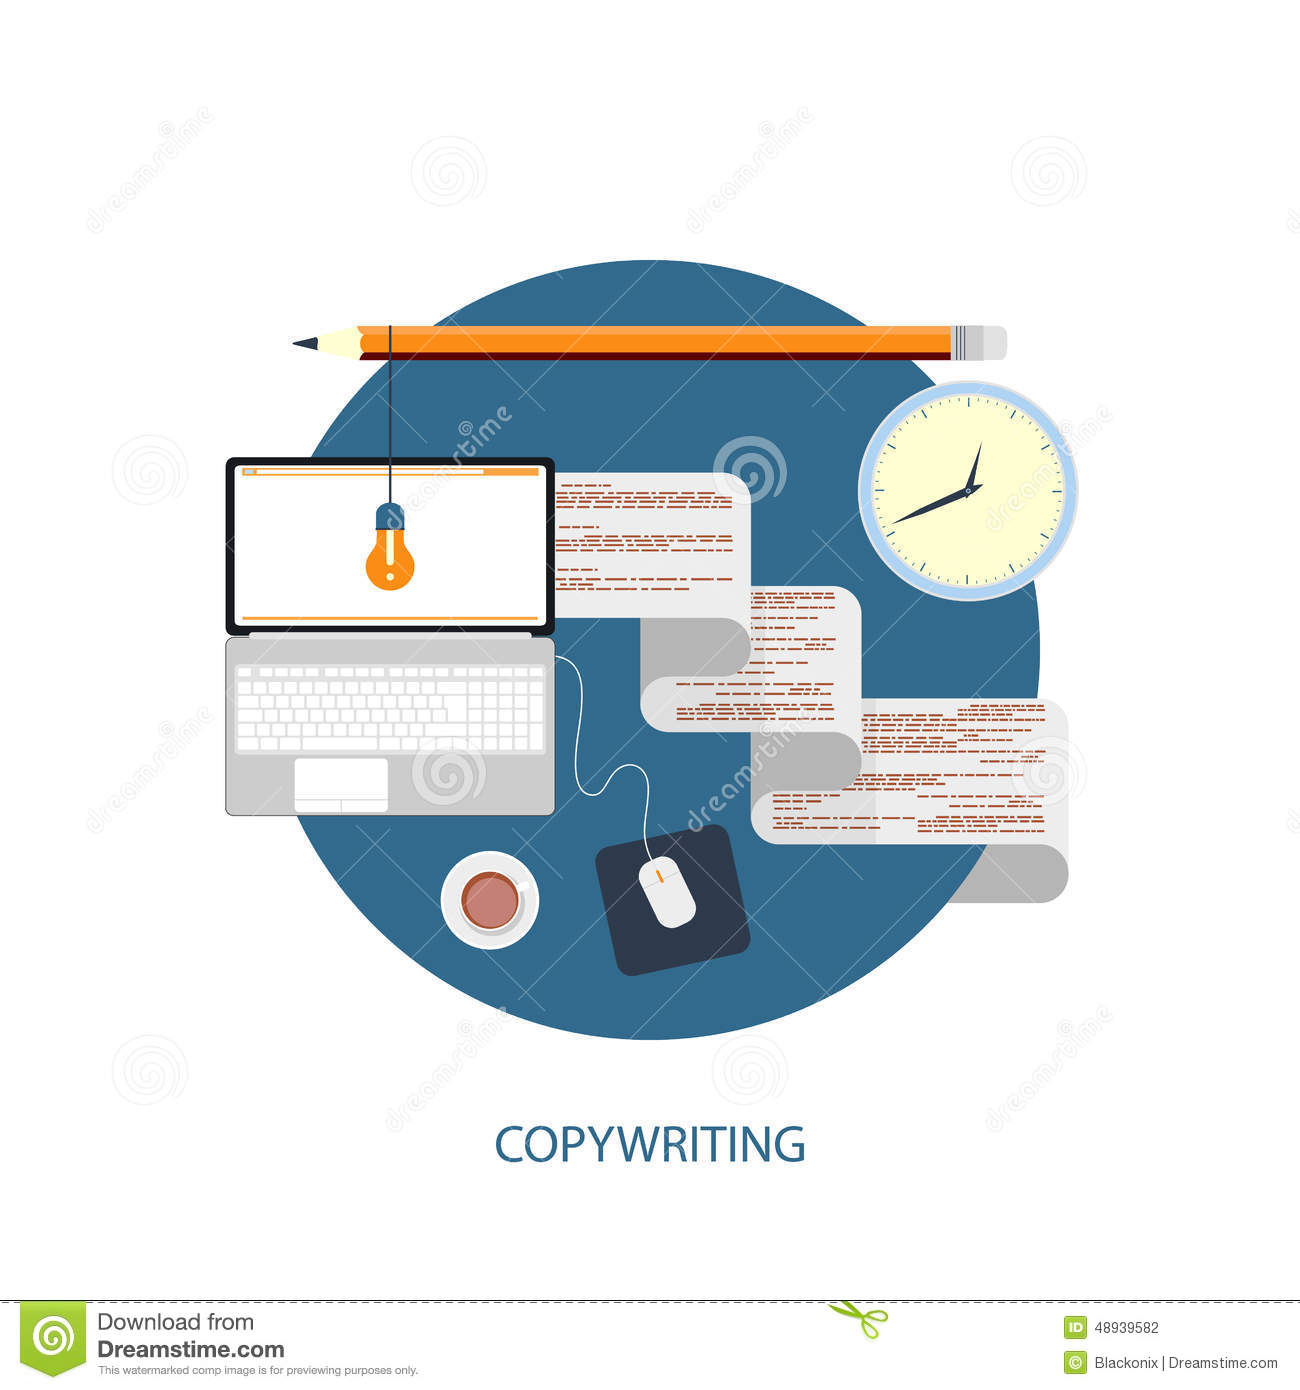 How to Start a Copywriting Business